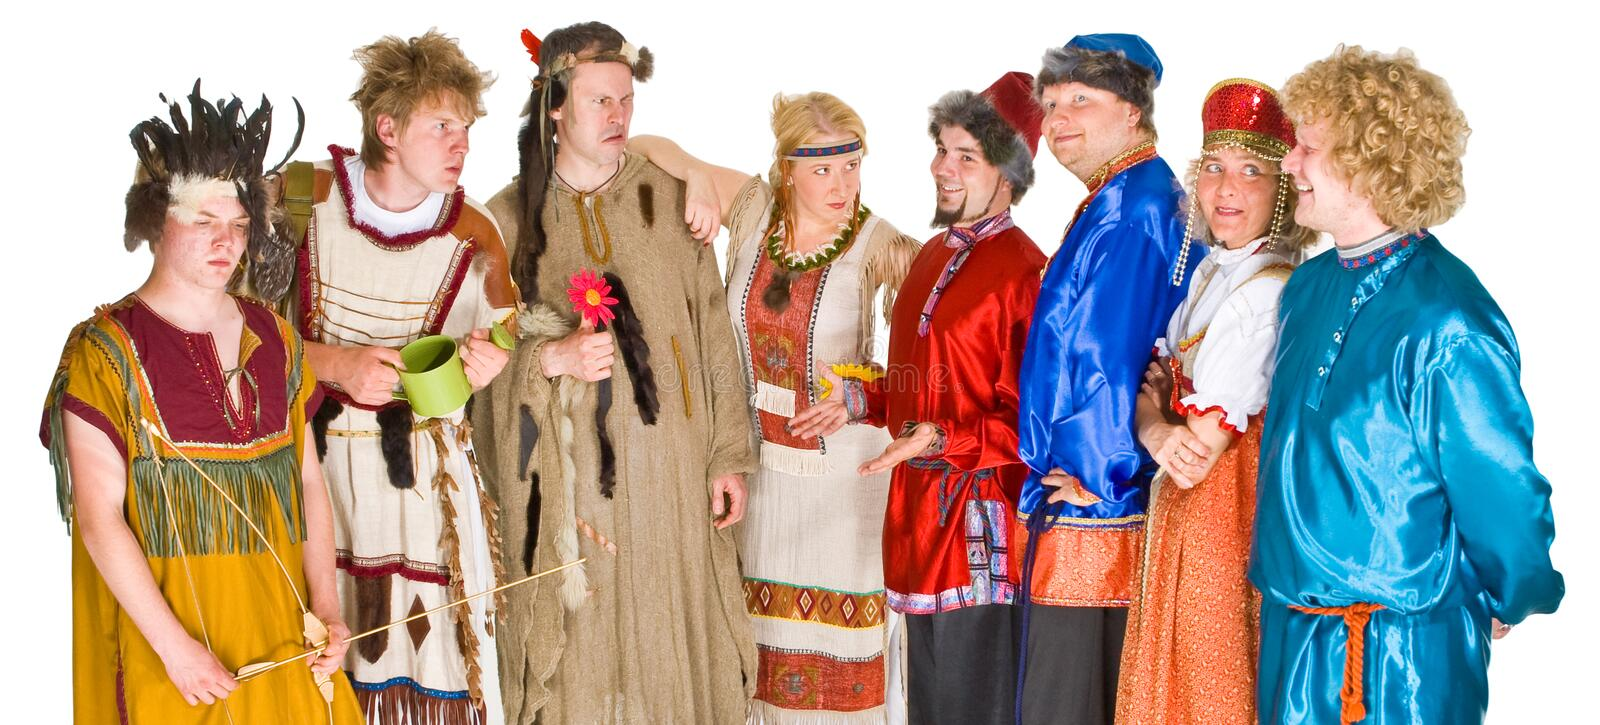 Group of theater characters stock images